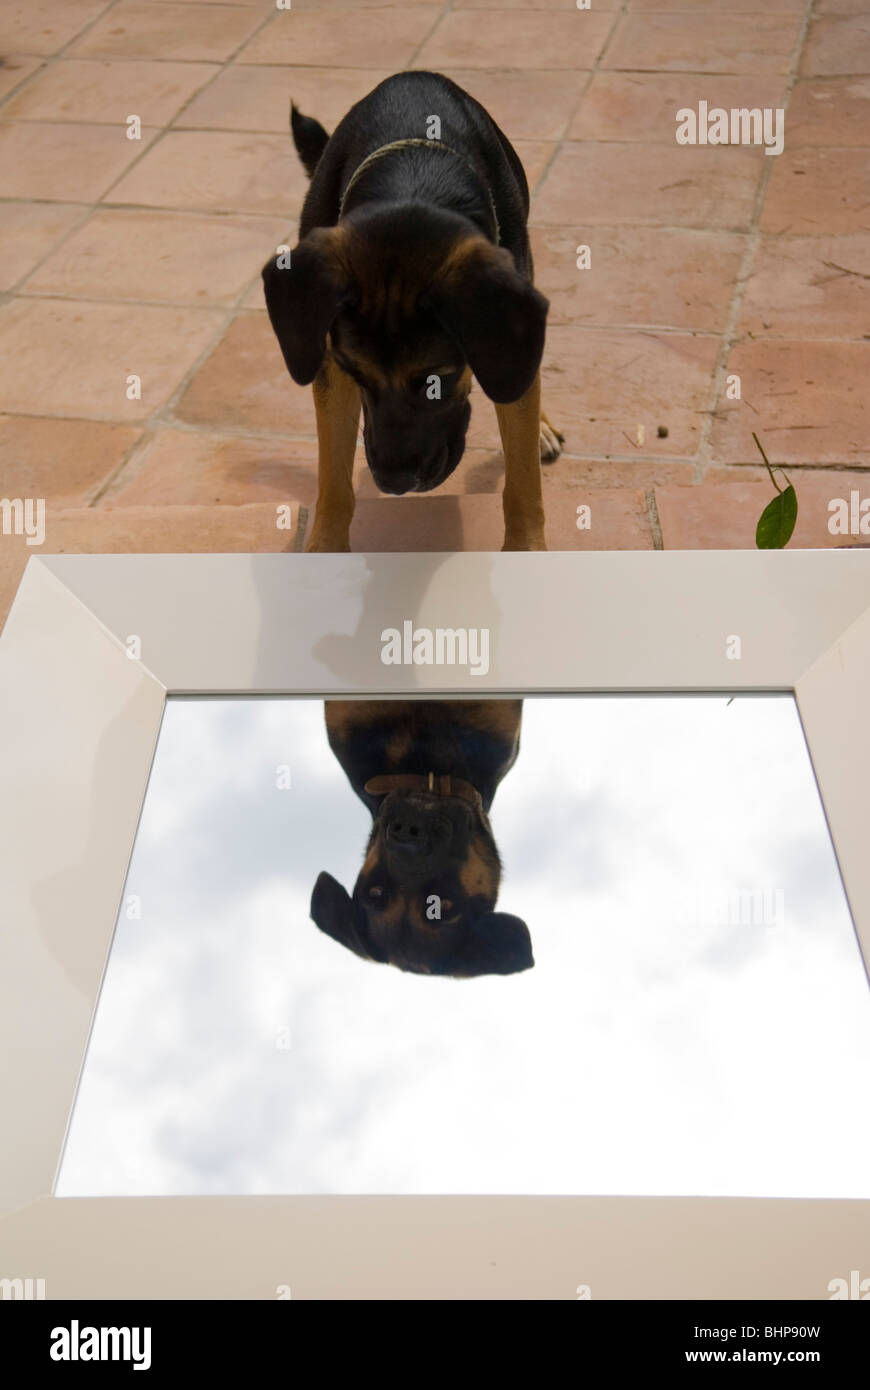 a large dog peers at its reflection in a mirror that is lying on its' back on a terrace - Stock Image